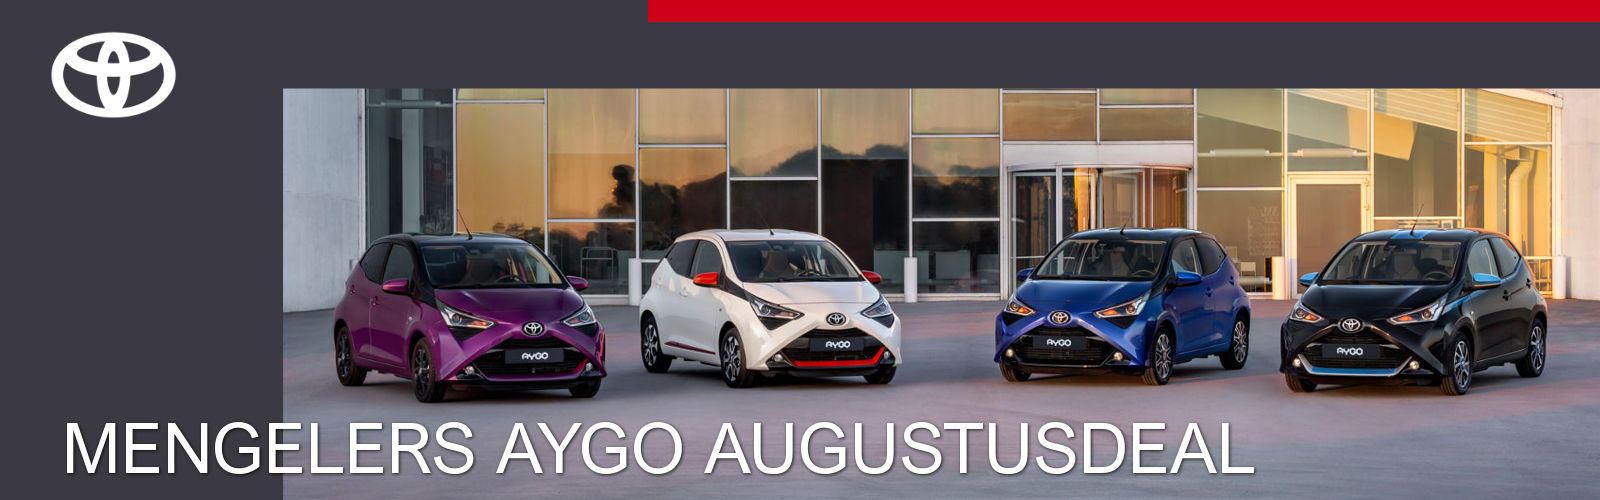 Mengelers-Automotive-AYGO-augustusdeal